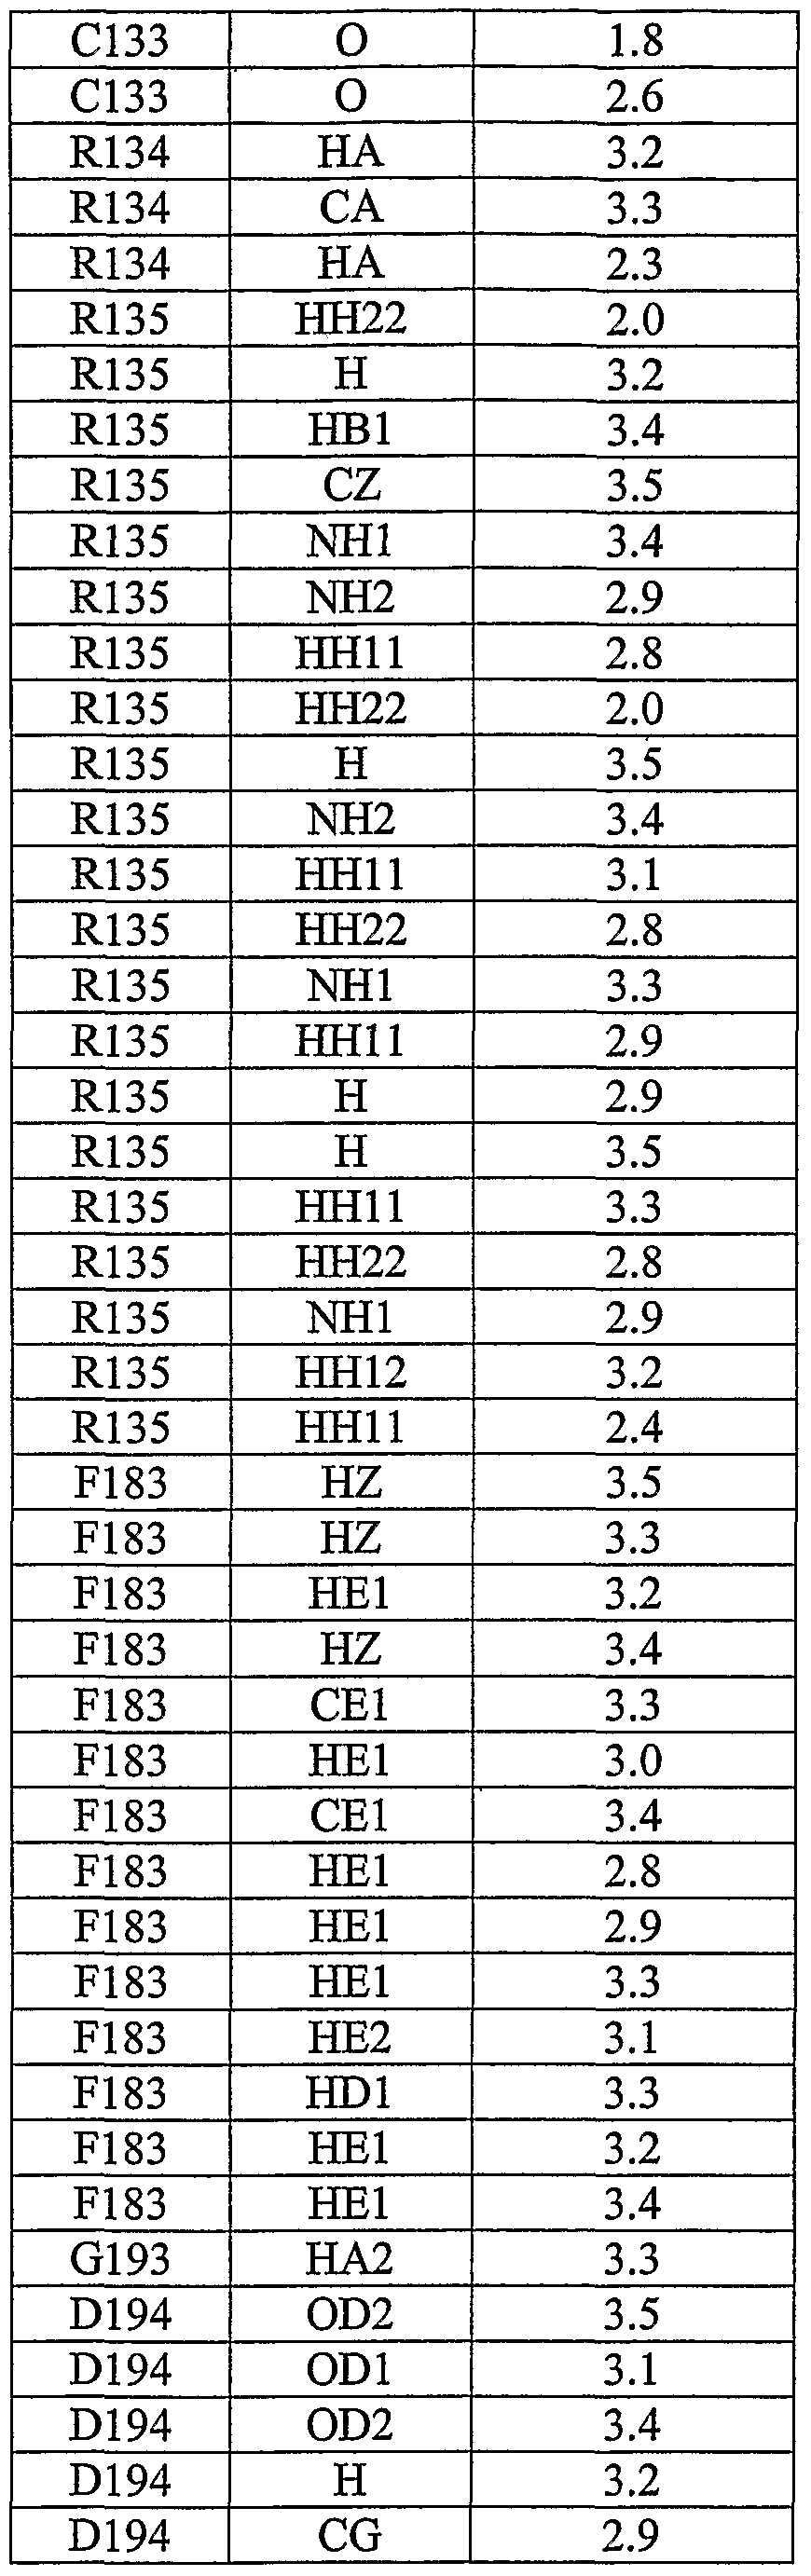 01dd73638bb WO2005047526A2 - Method for identifying inhibitors using a homology model  of polo-like kinase 1 - Google Patents